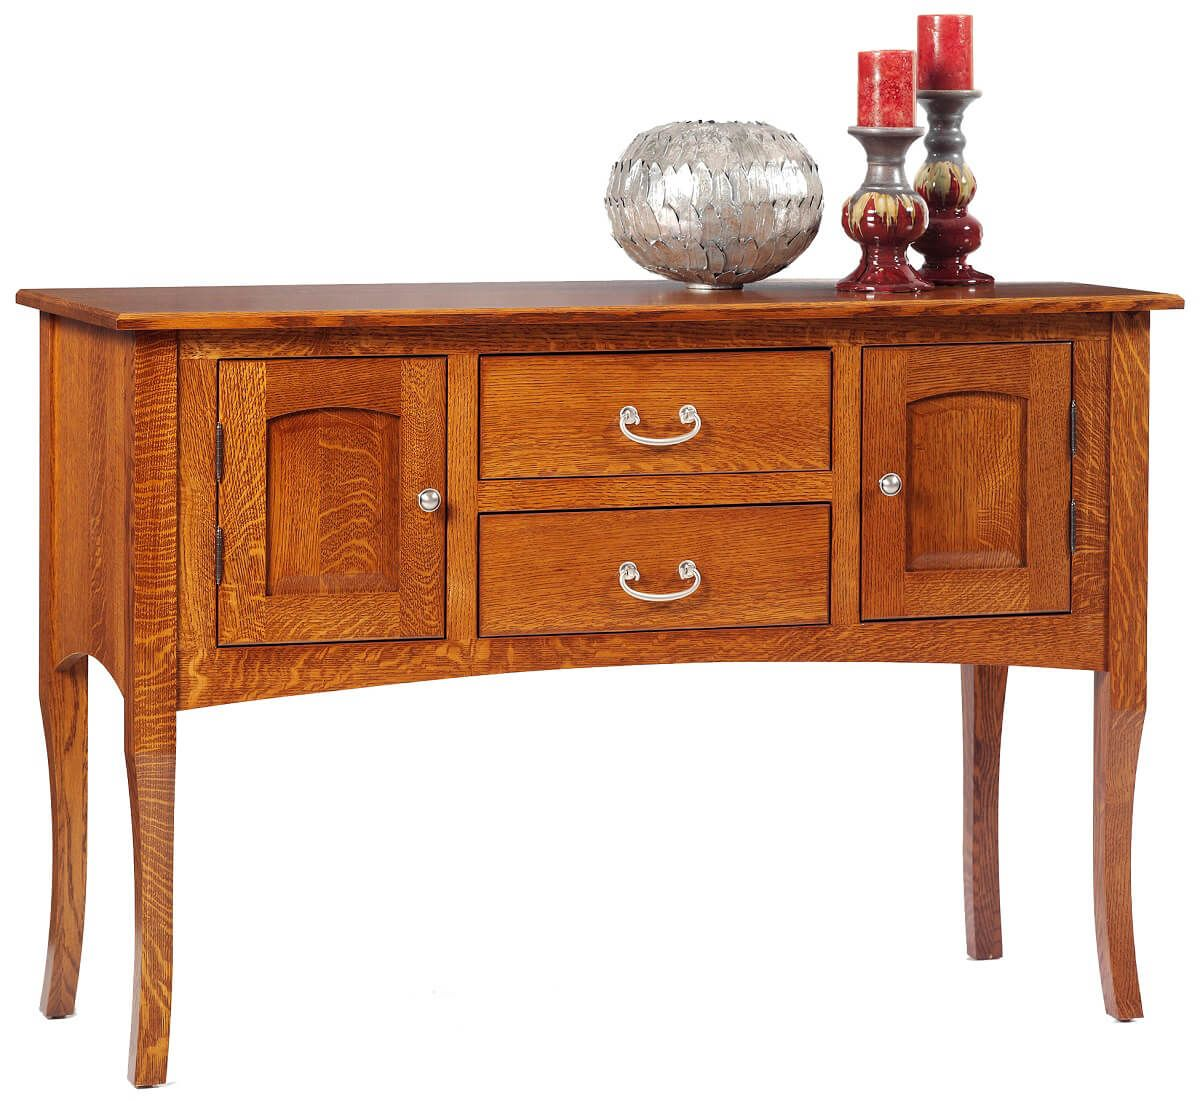 Sideboard Real South Hooksett Real Wood Sideboard Countryside Amish Furniture